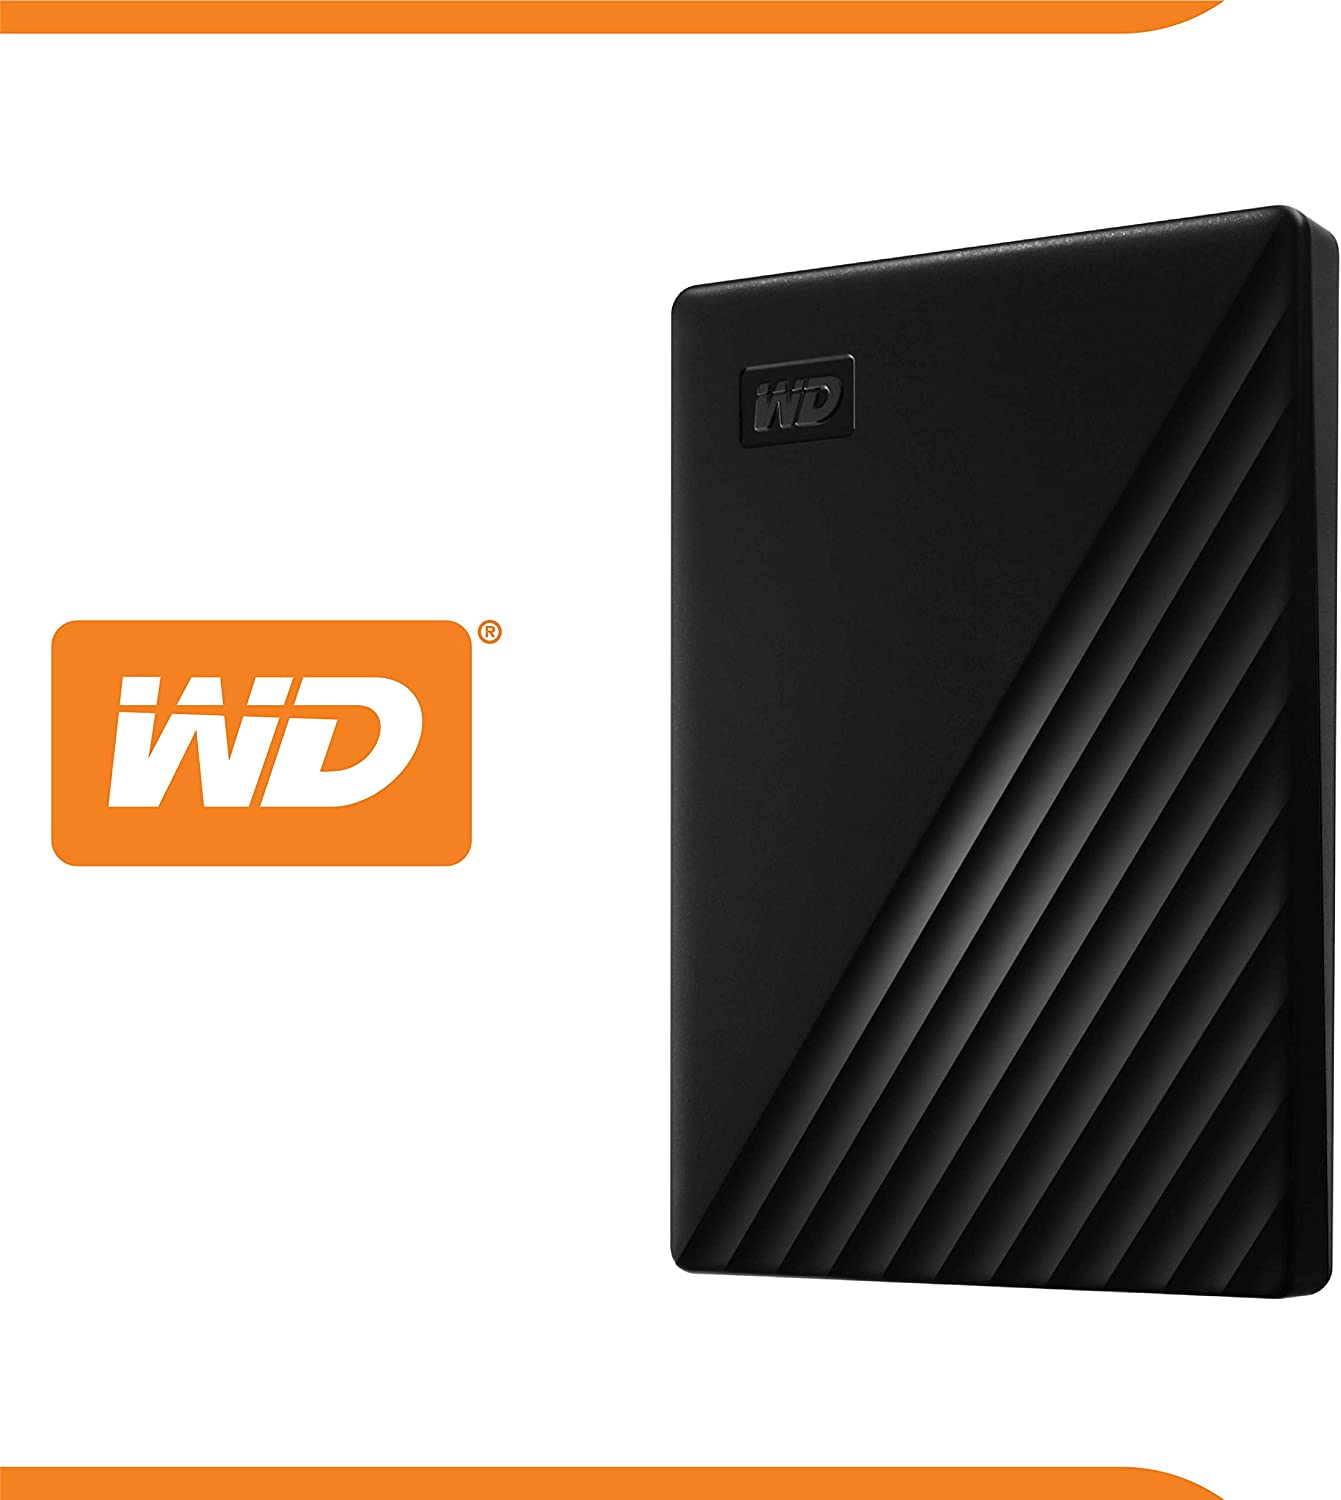 WD 1TB My Passport Portable External Hard Drive, Black - WDBYVG0010BBK-WESN